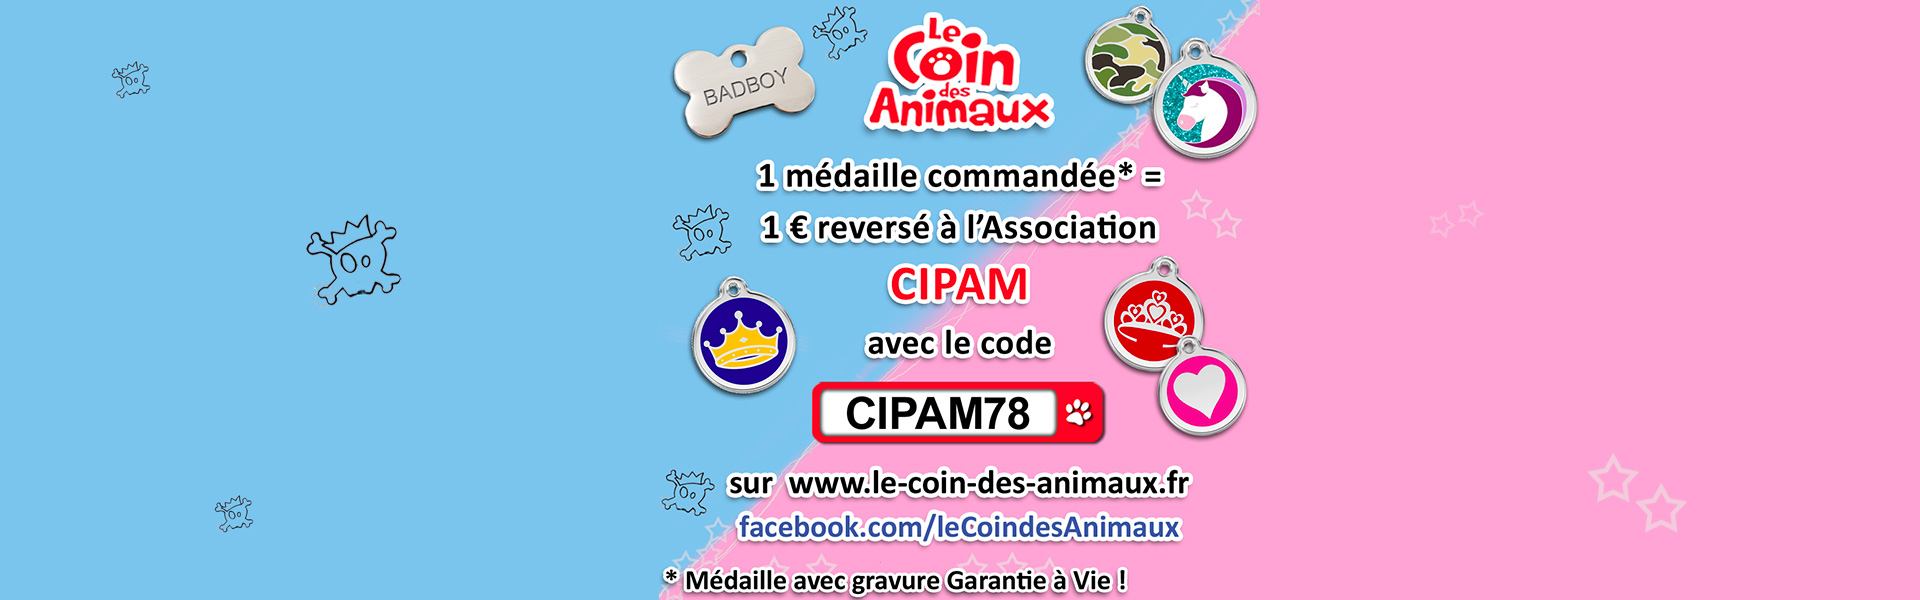 slide-coin-animaux